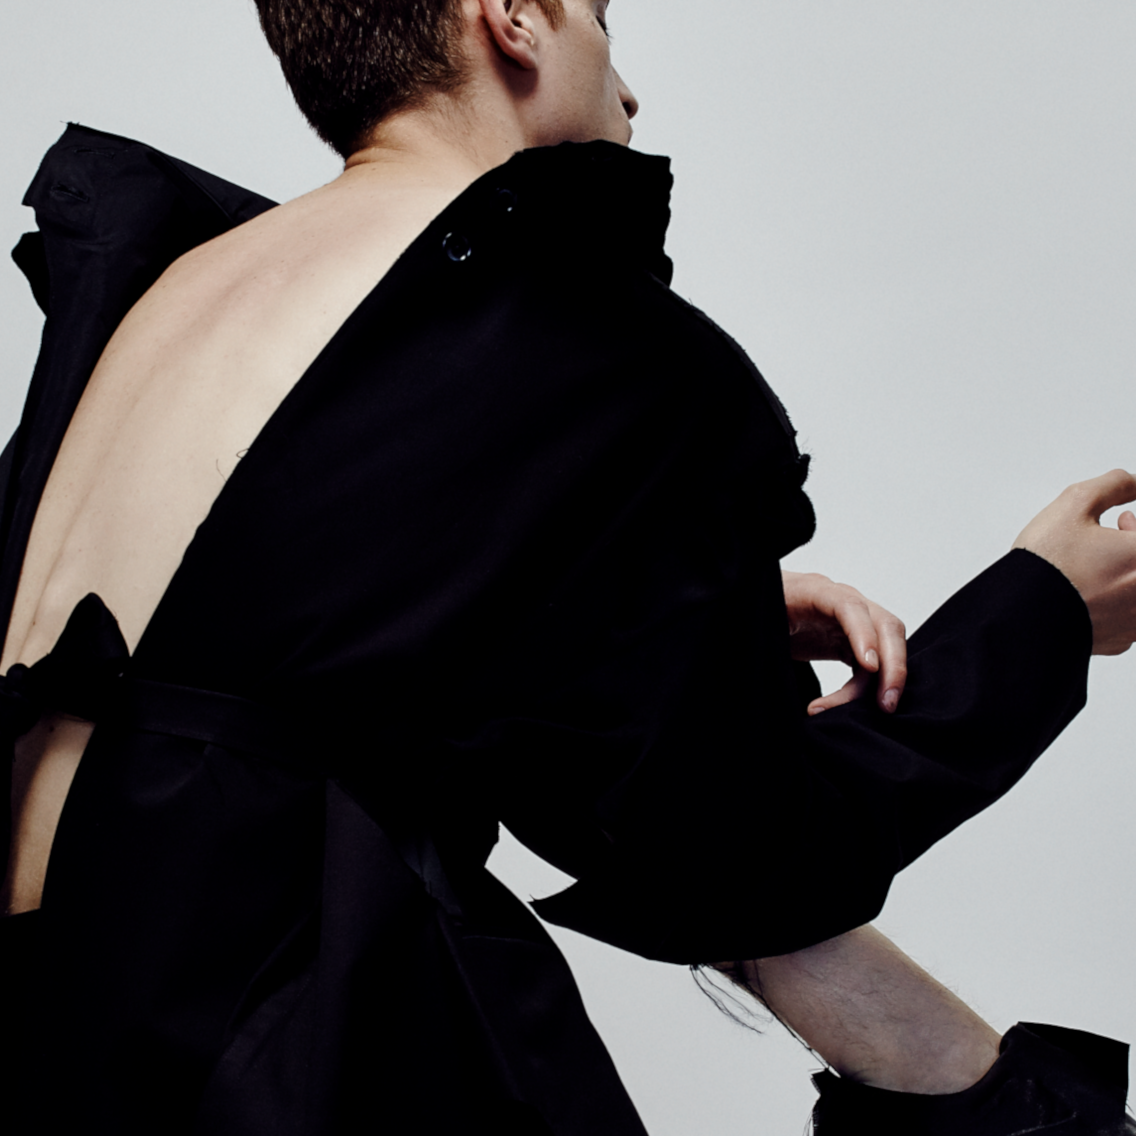 Male model in black outfit and shoes